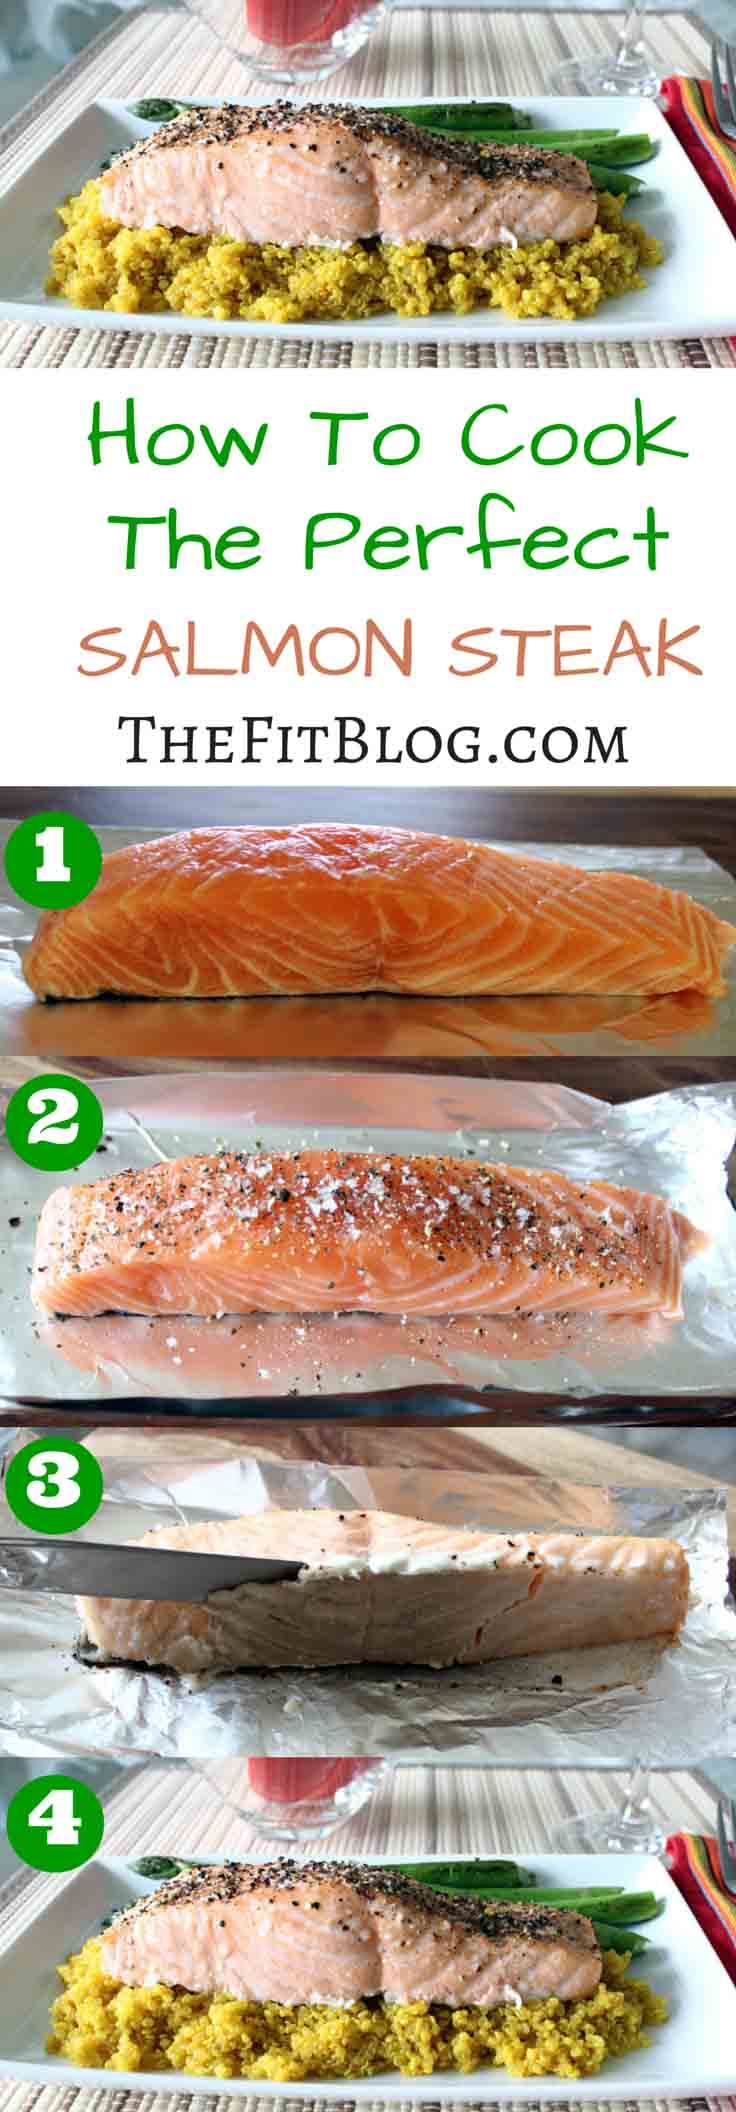 This is my favorite way to cook a salmon steak that is easy enough that anybody can do it and will give a great result every time.